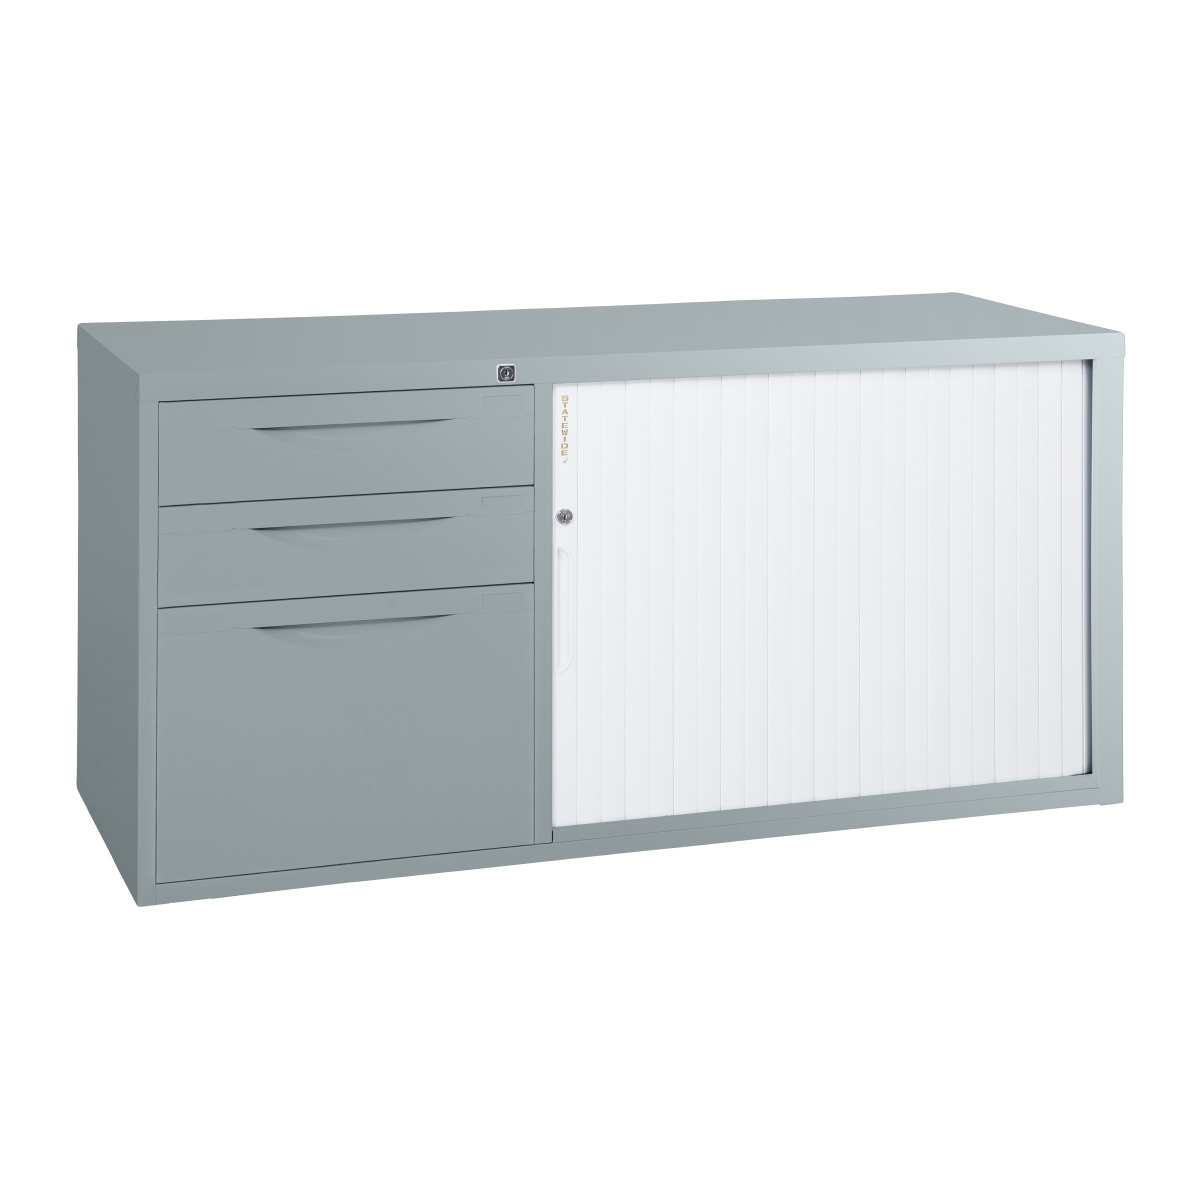 Swcad Statewide Tambour Door Mobile Caddy Light Grey